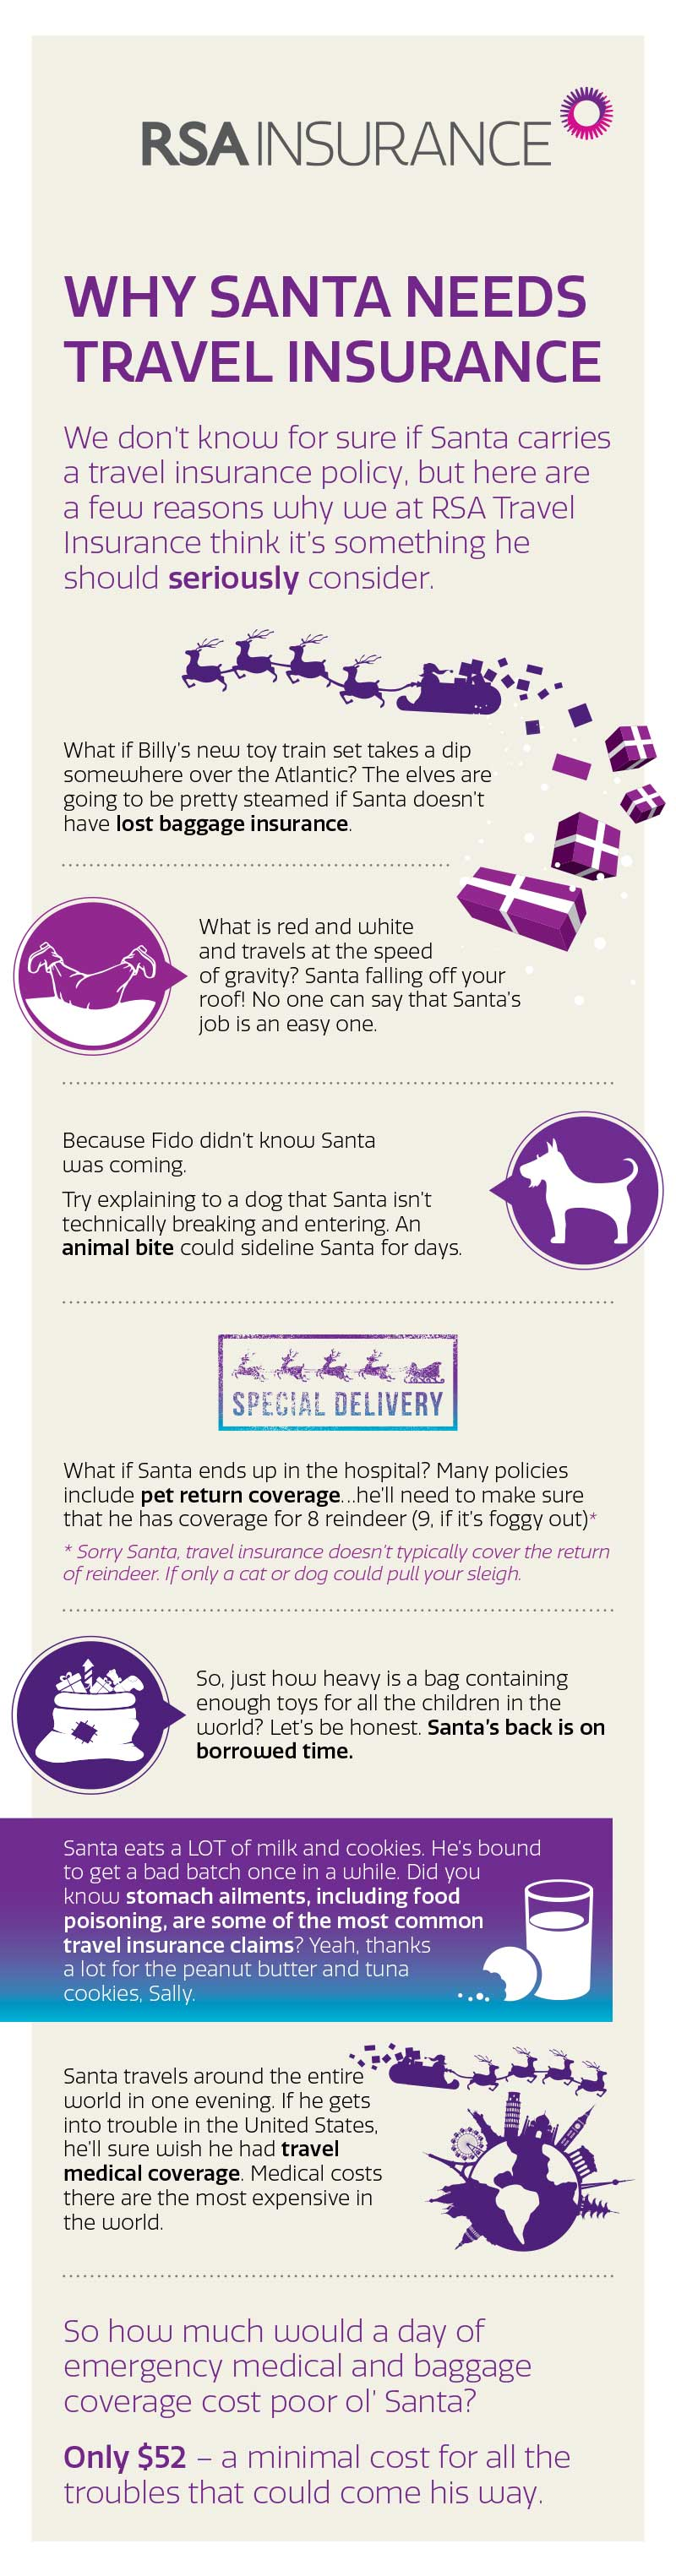 Infographic-Why Santa needs travel insurance